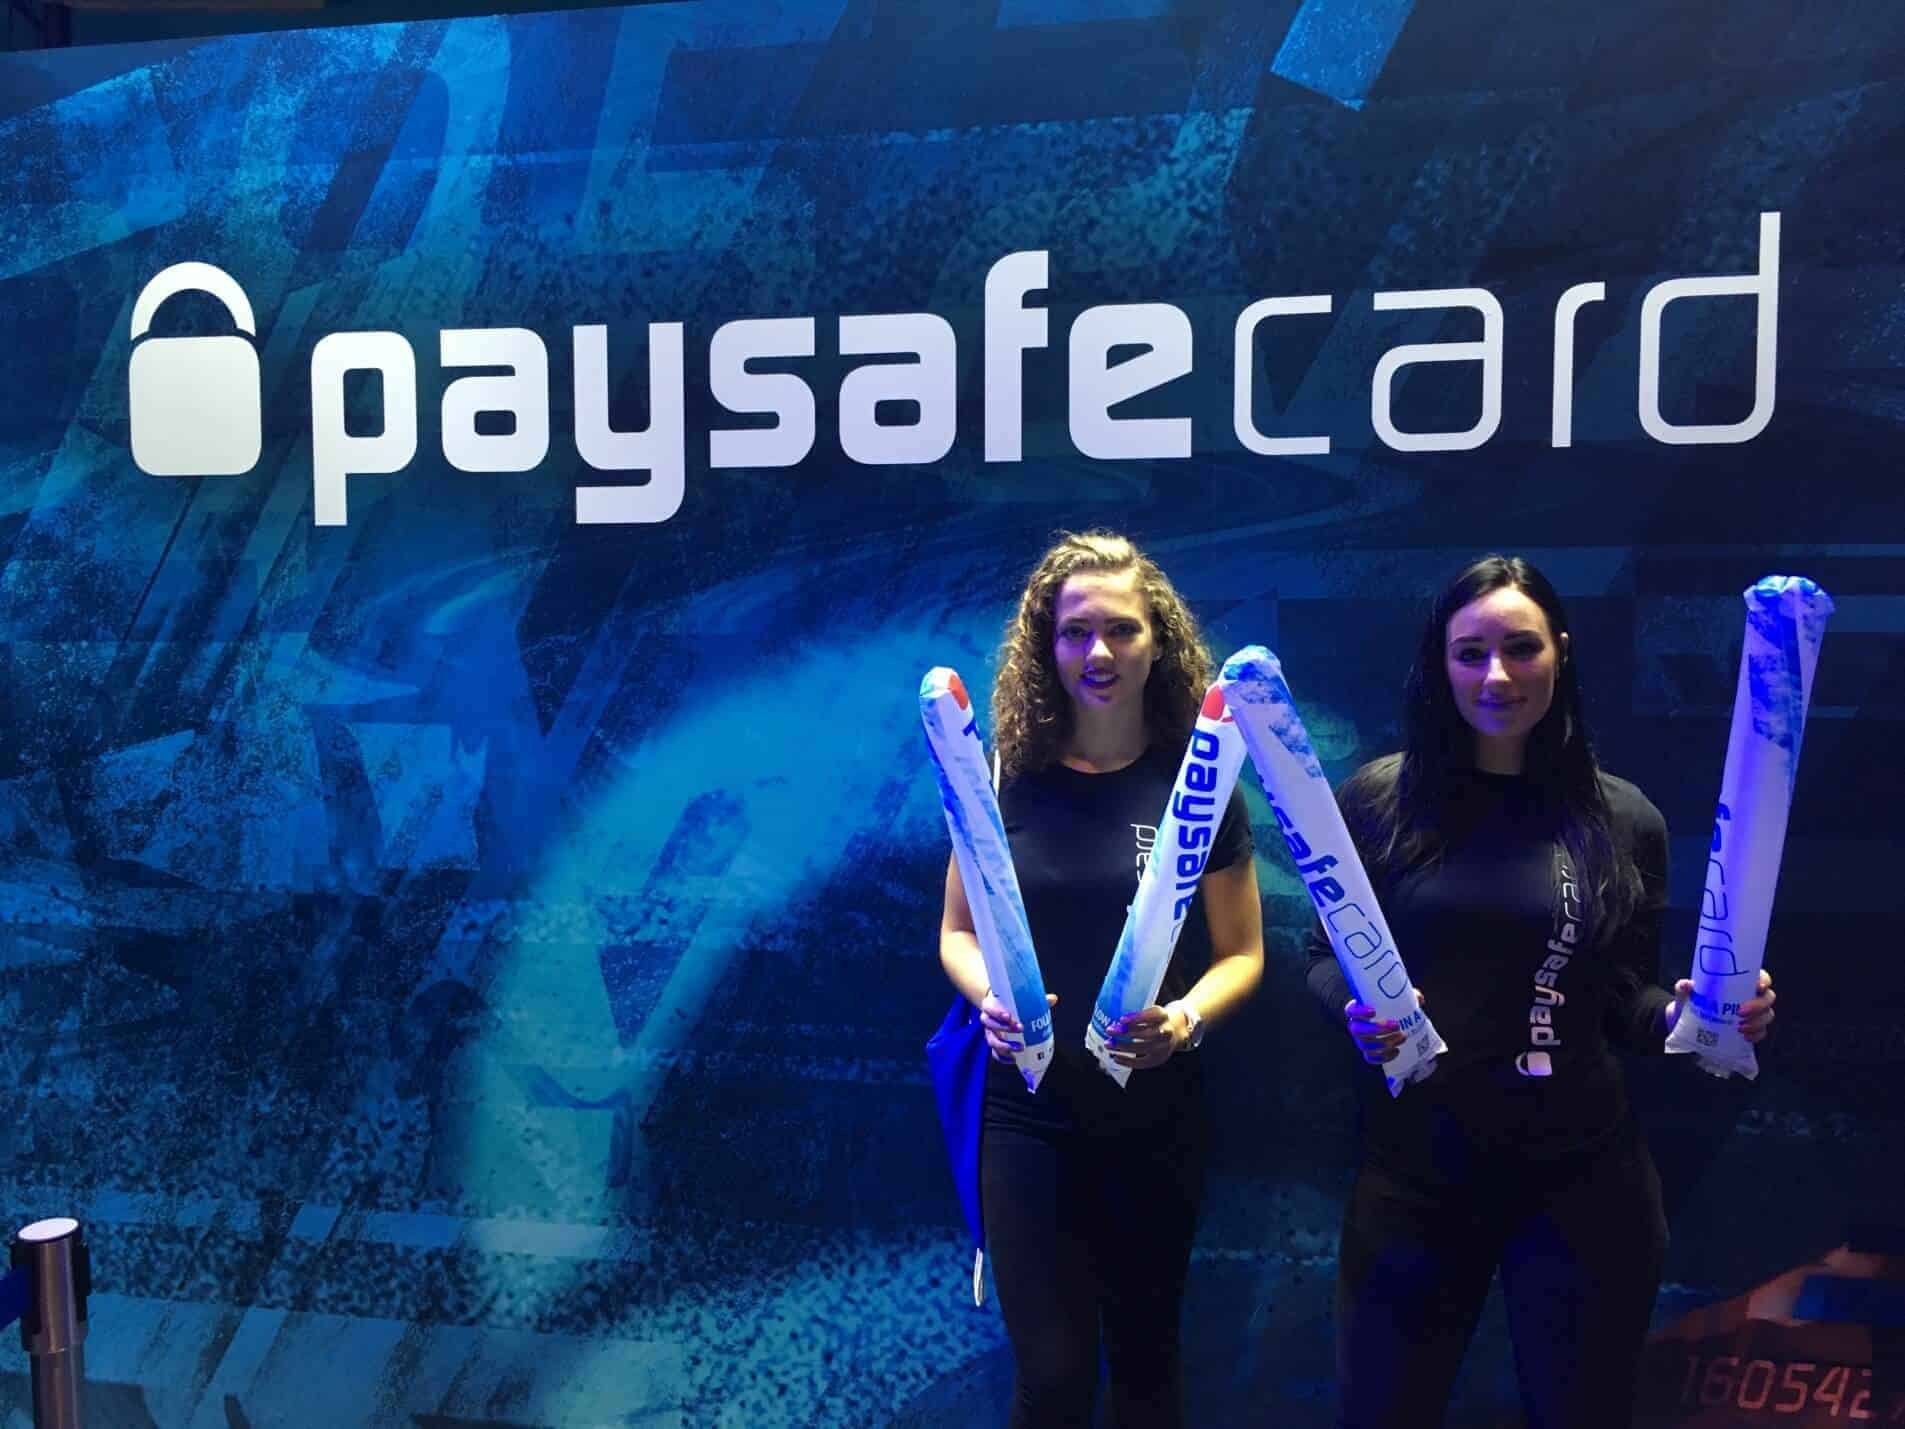 Paysafecard Cheersticks